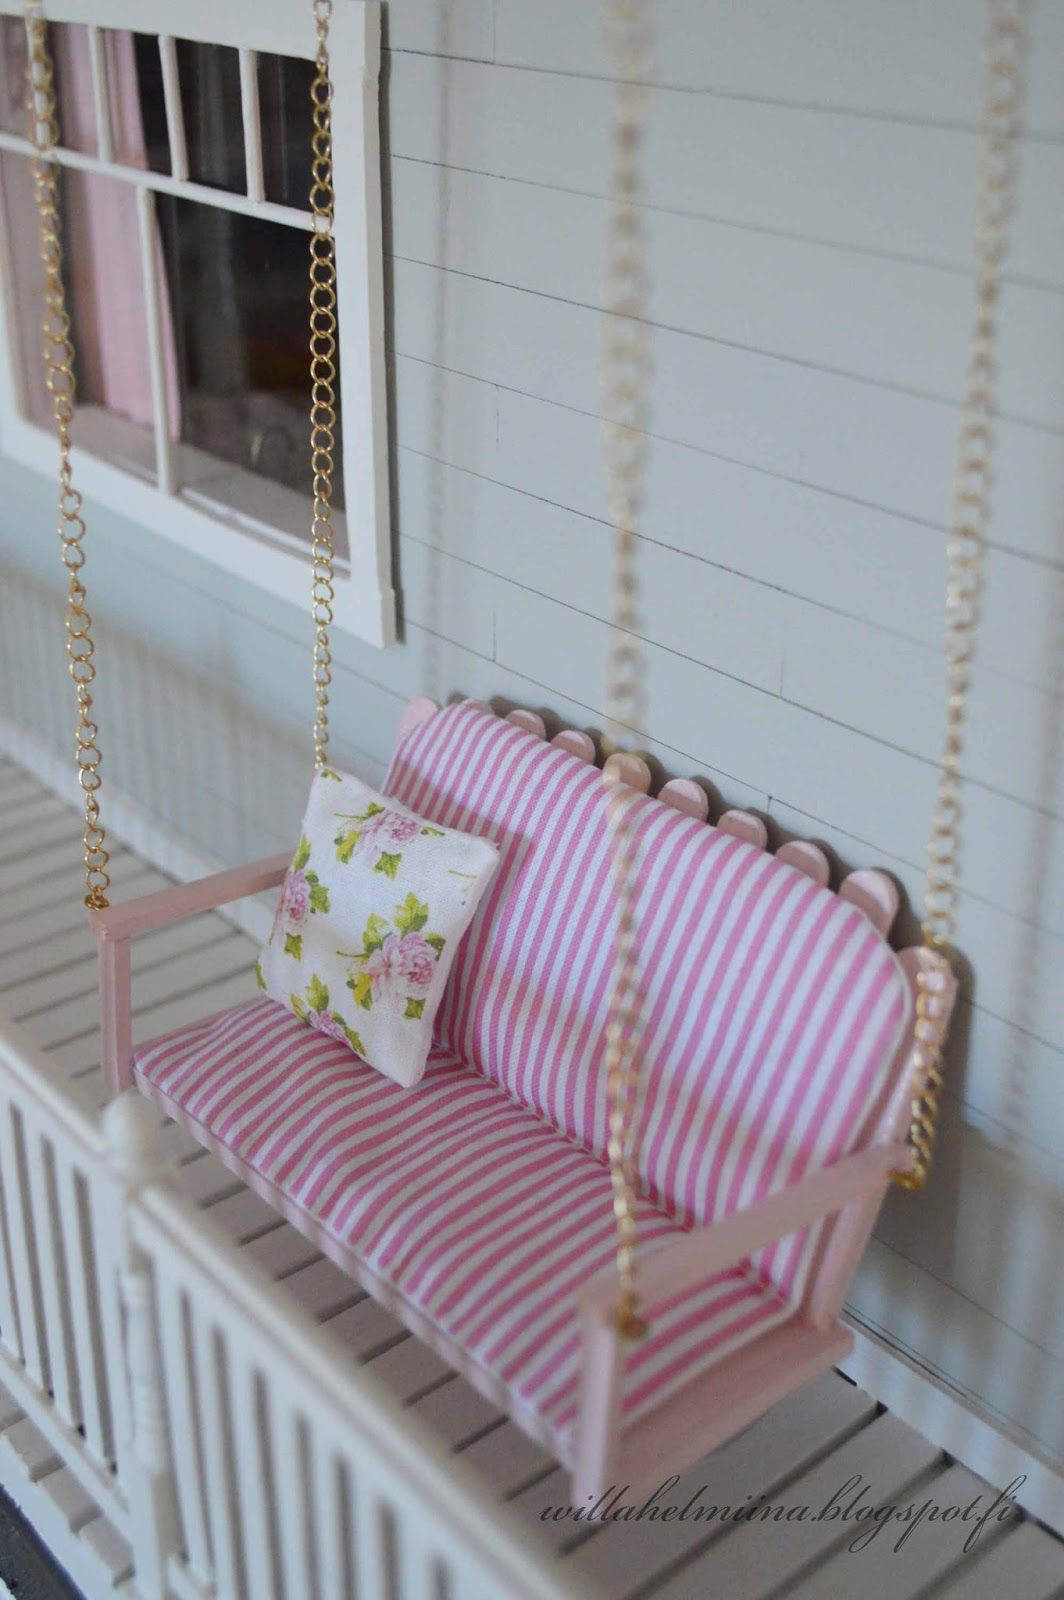 Hydrangea and porch swing tutorial...